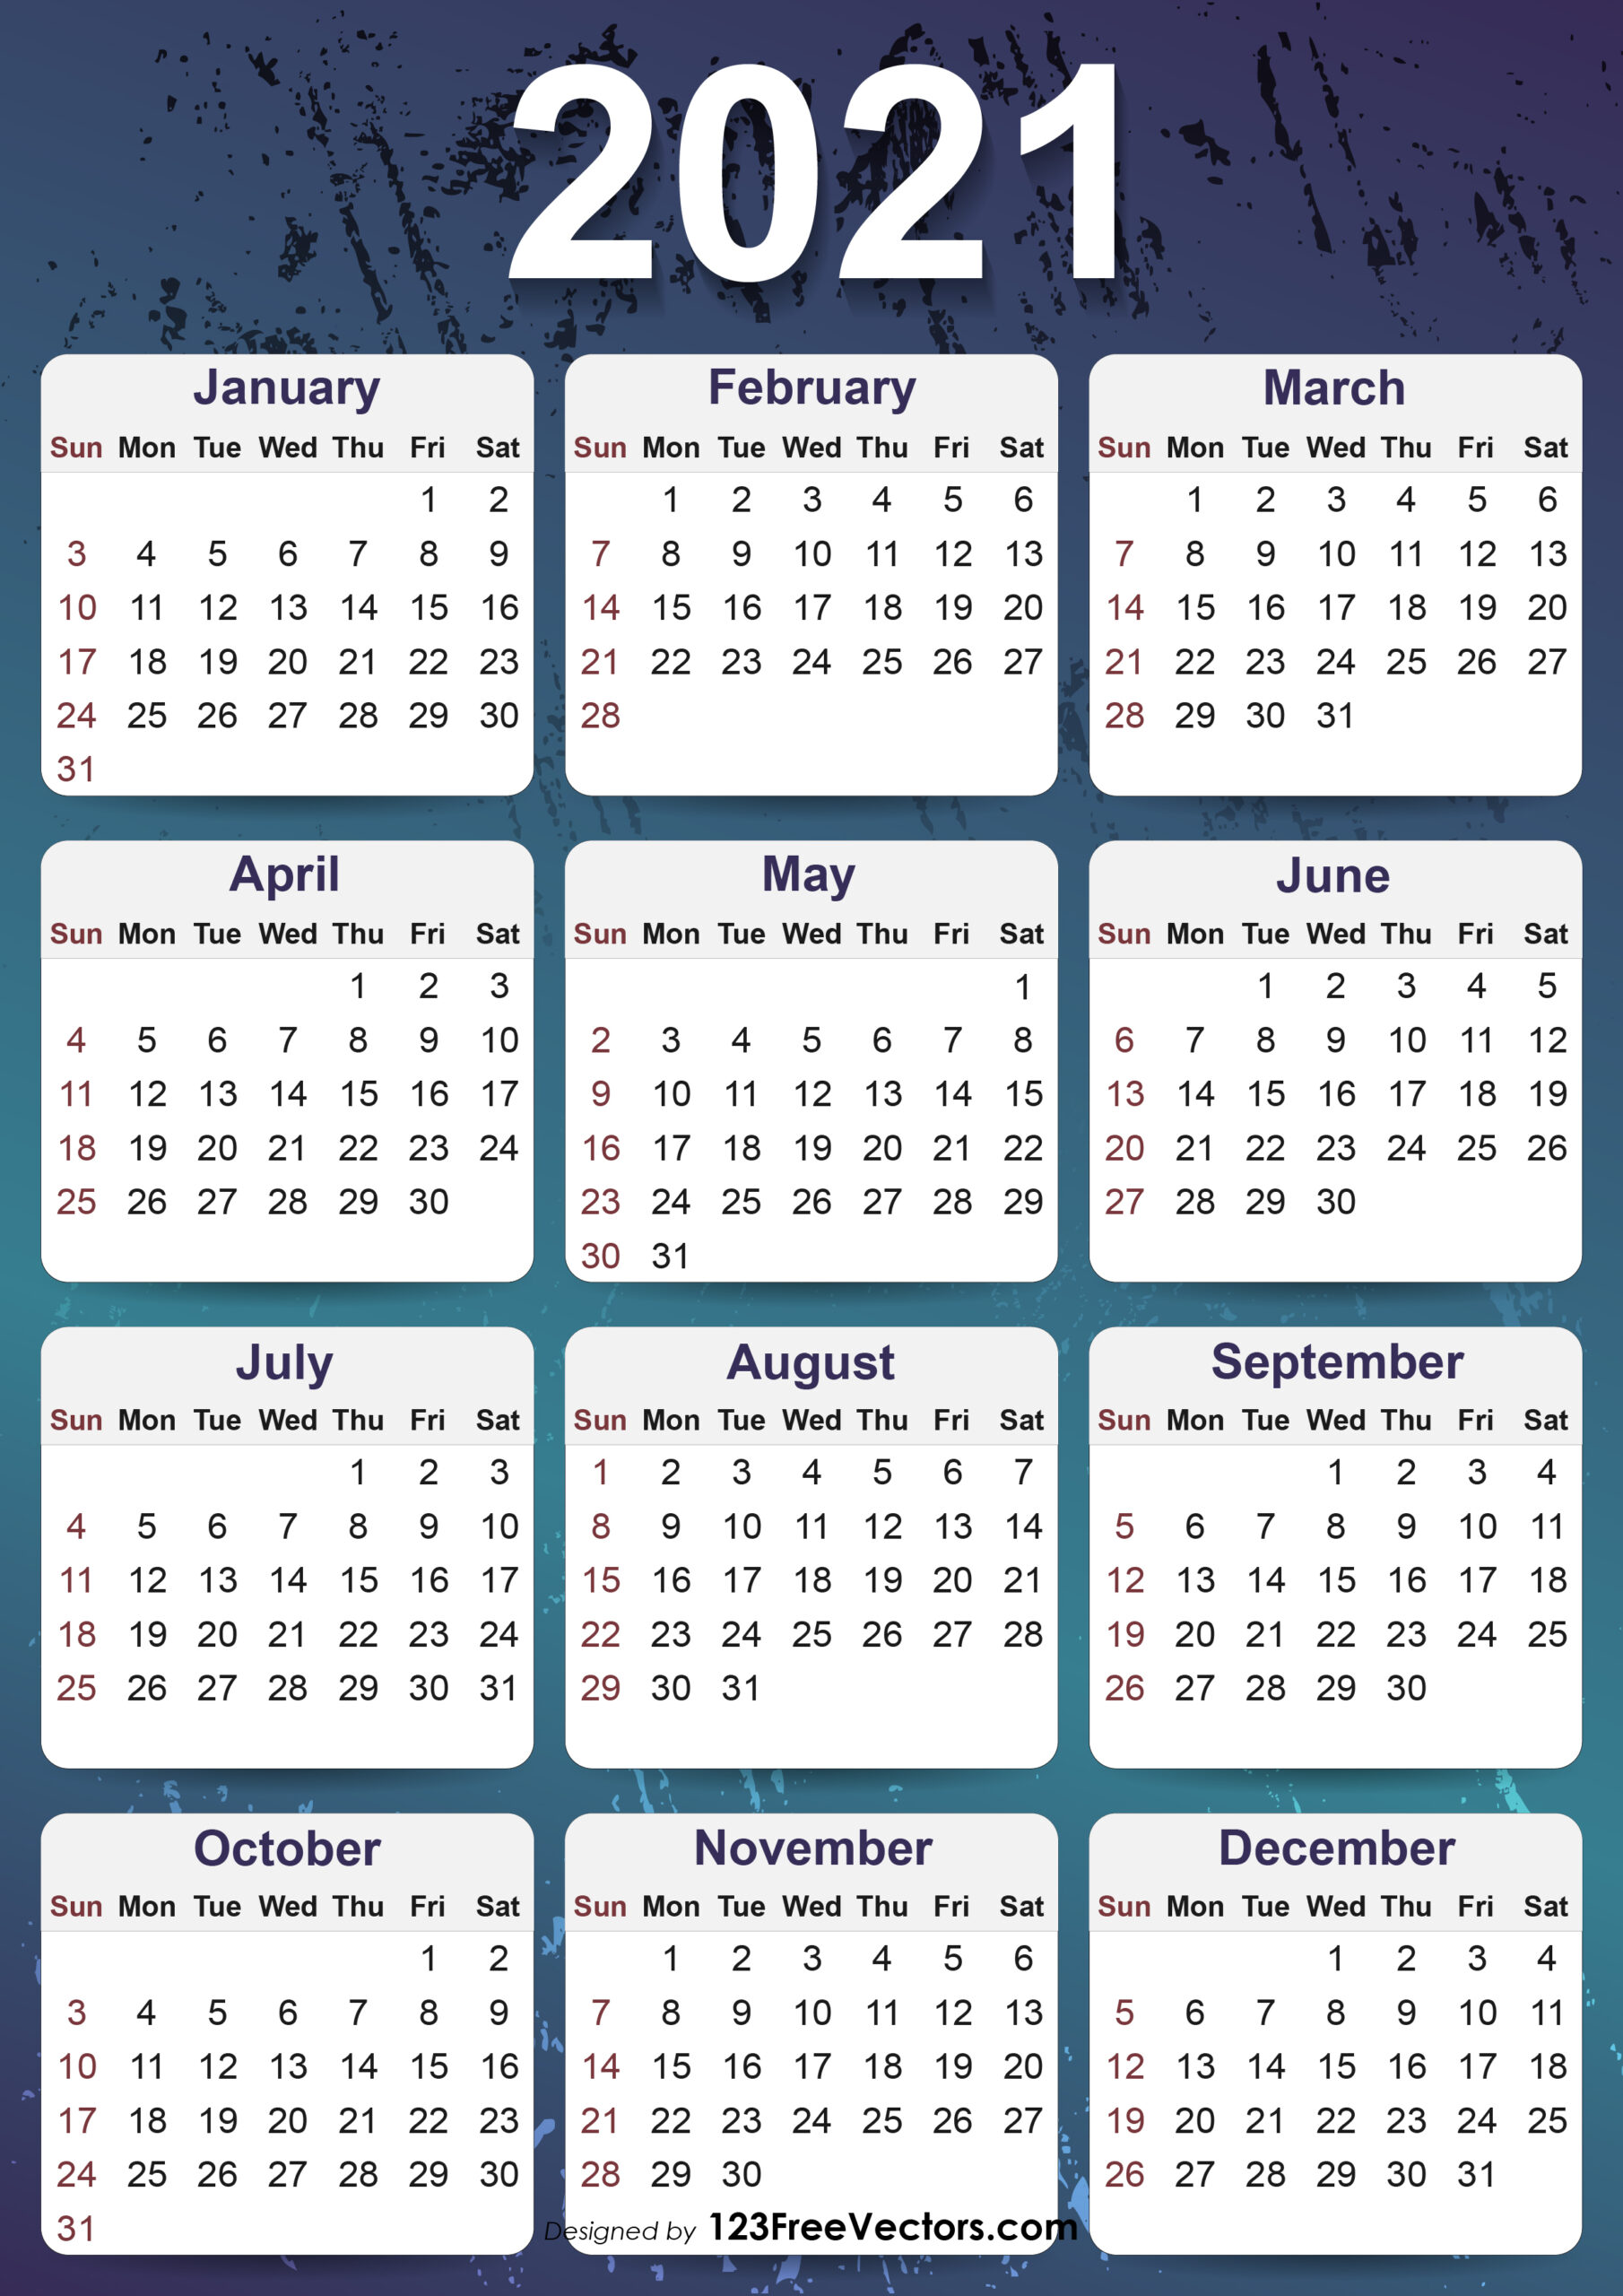 Free 2021 Yearly Calendar Template within 2021 Yearly Calendar With Boxes